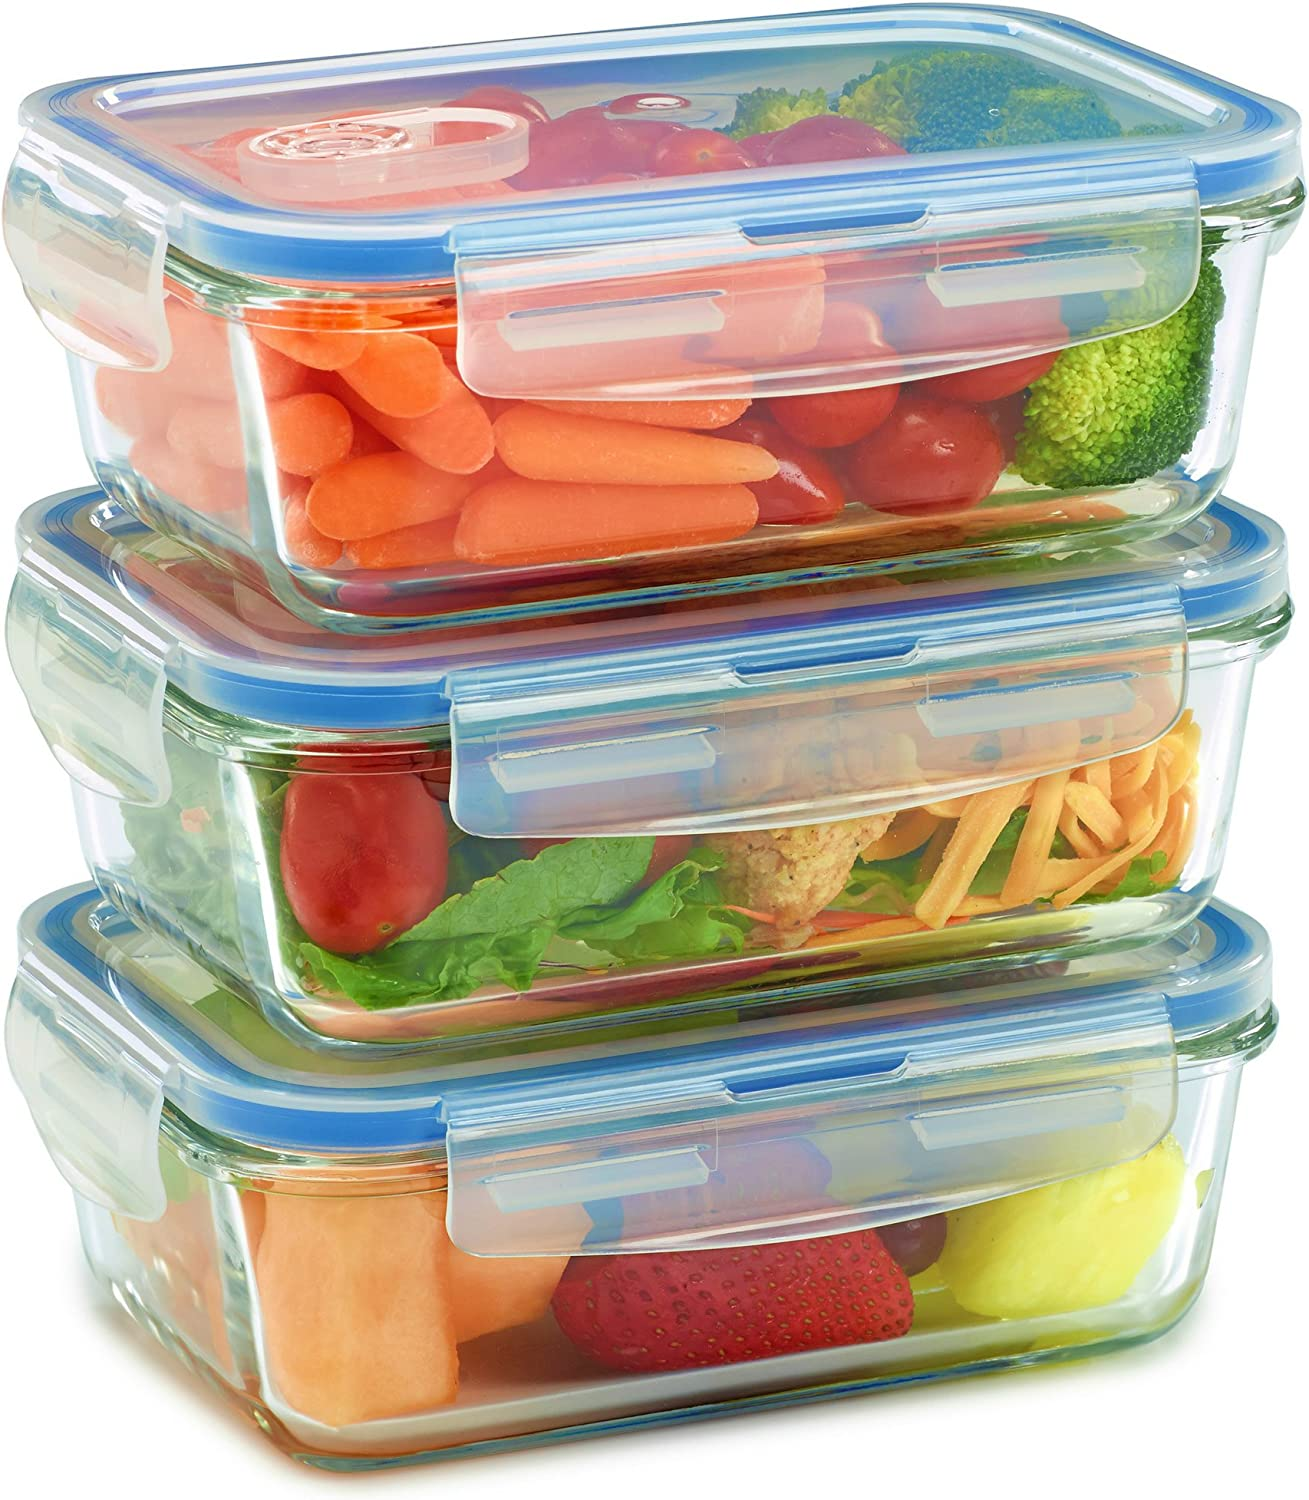 Glass Meal Prep Containers - Microwave safe